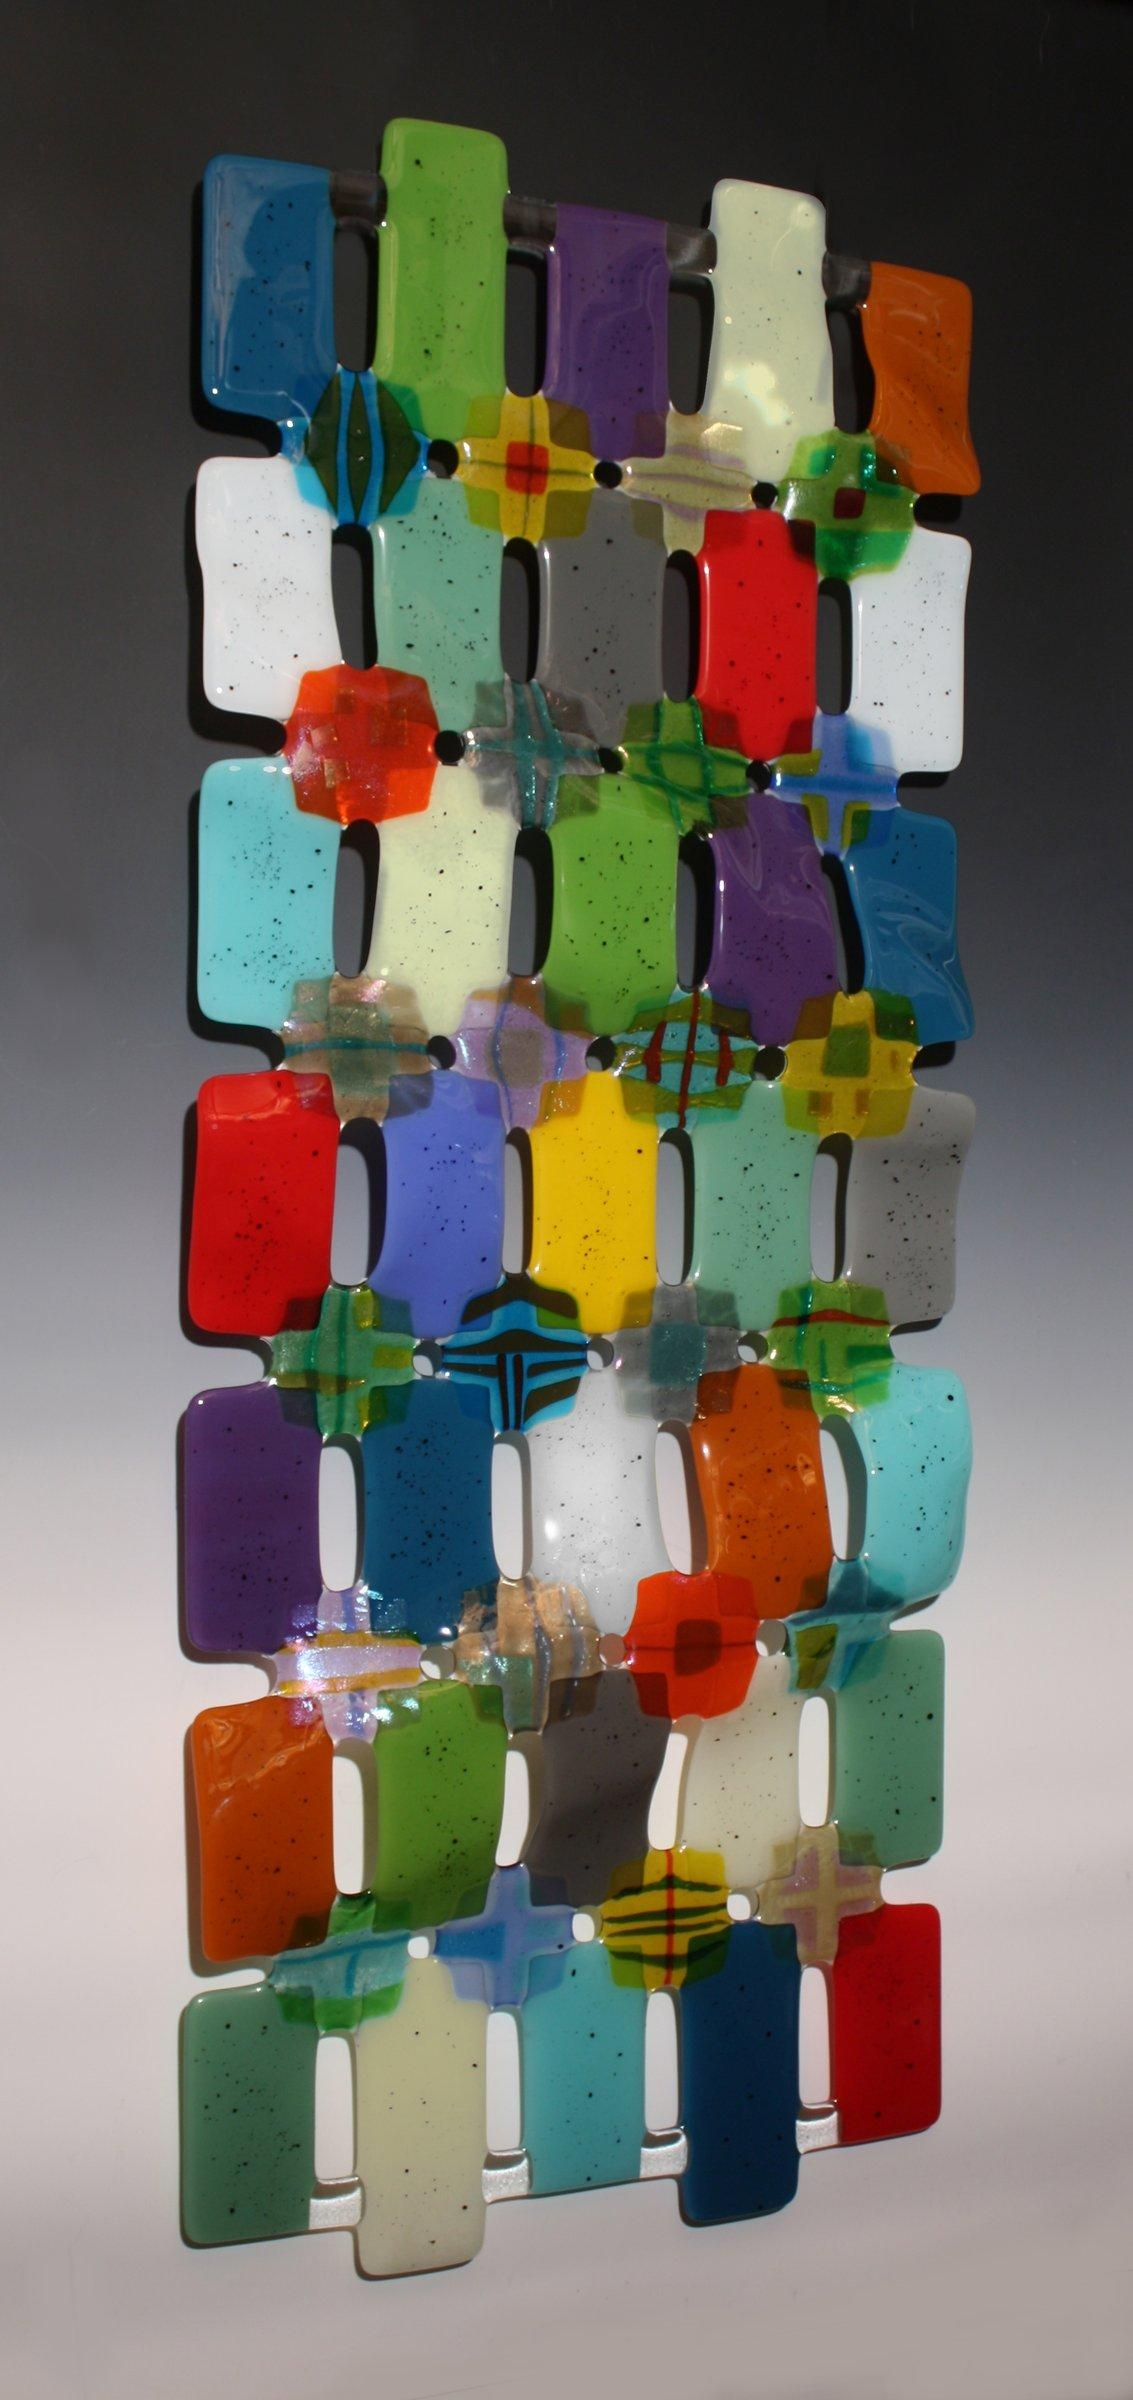 Kaleidoscopenina Cambron (Art Glass Wall Sculpture) | Artful Home With Regard To Fused Glass Wall Art For Sale (View 8 of 20)